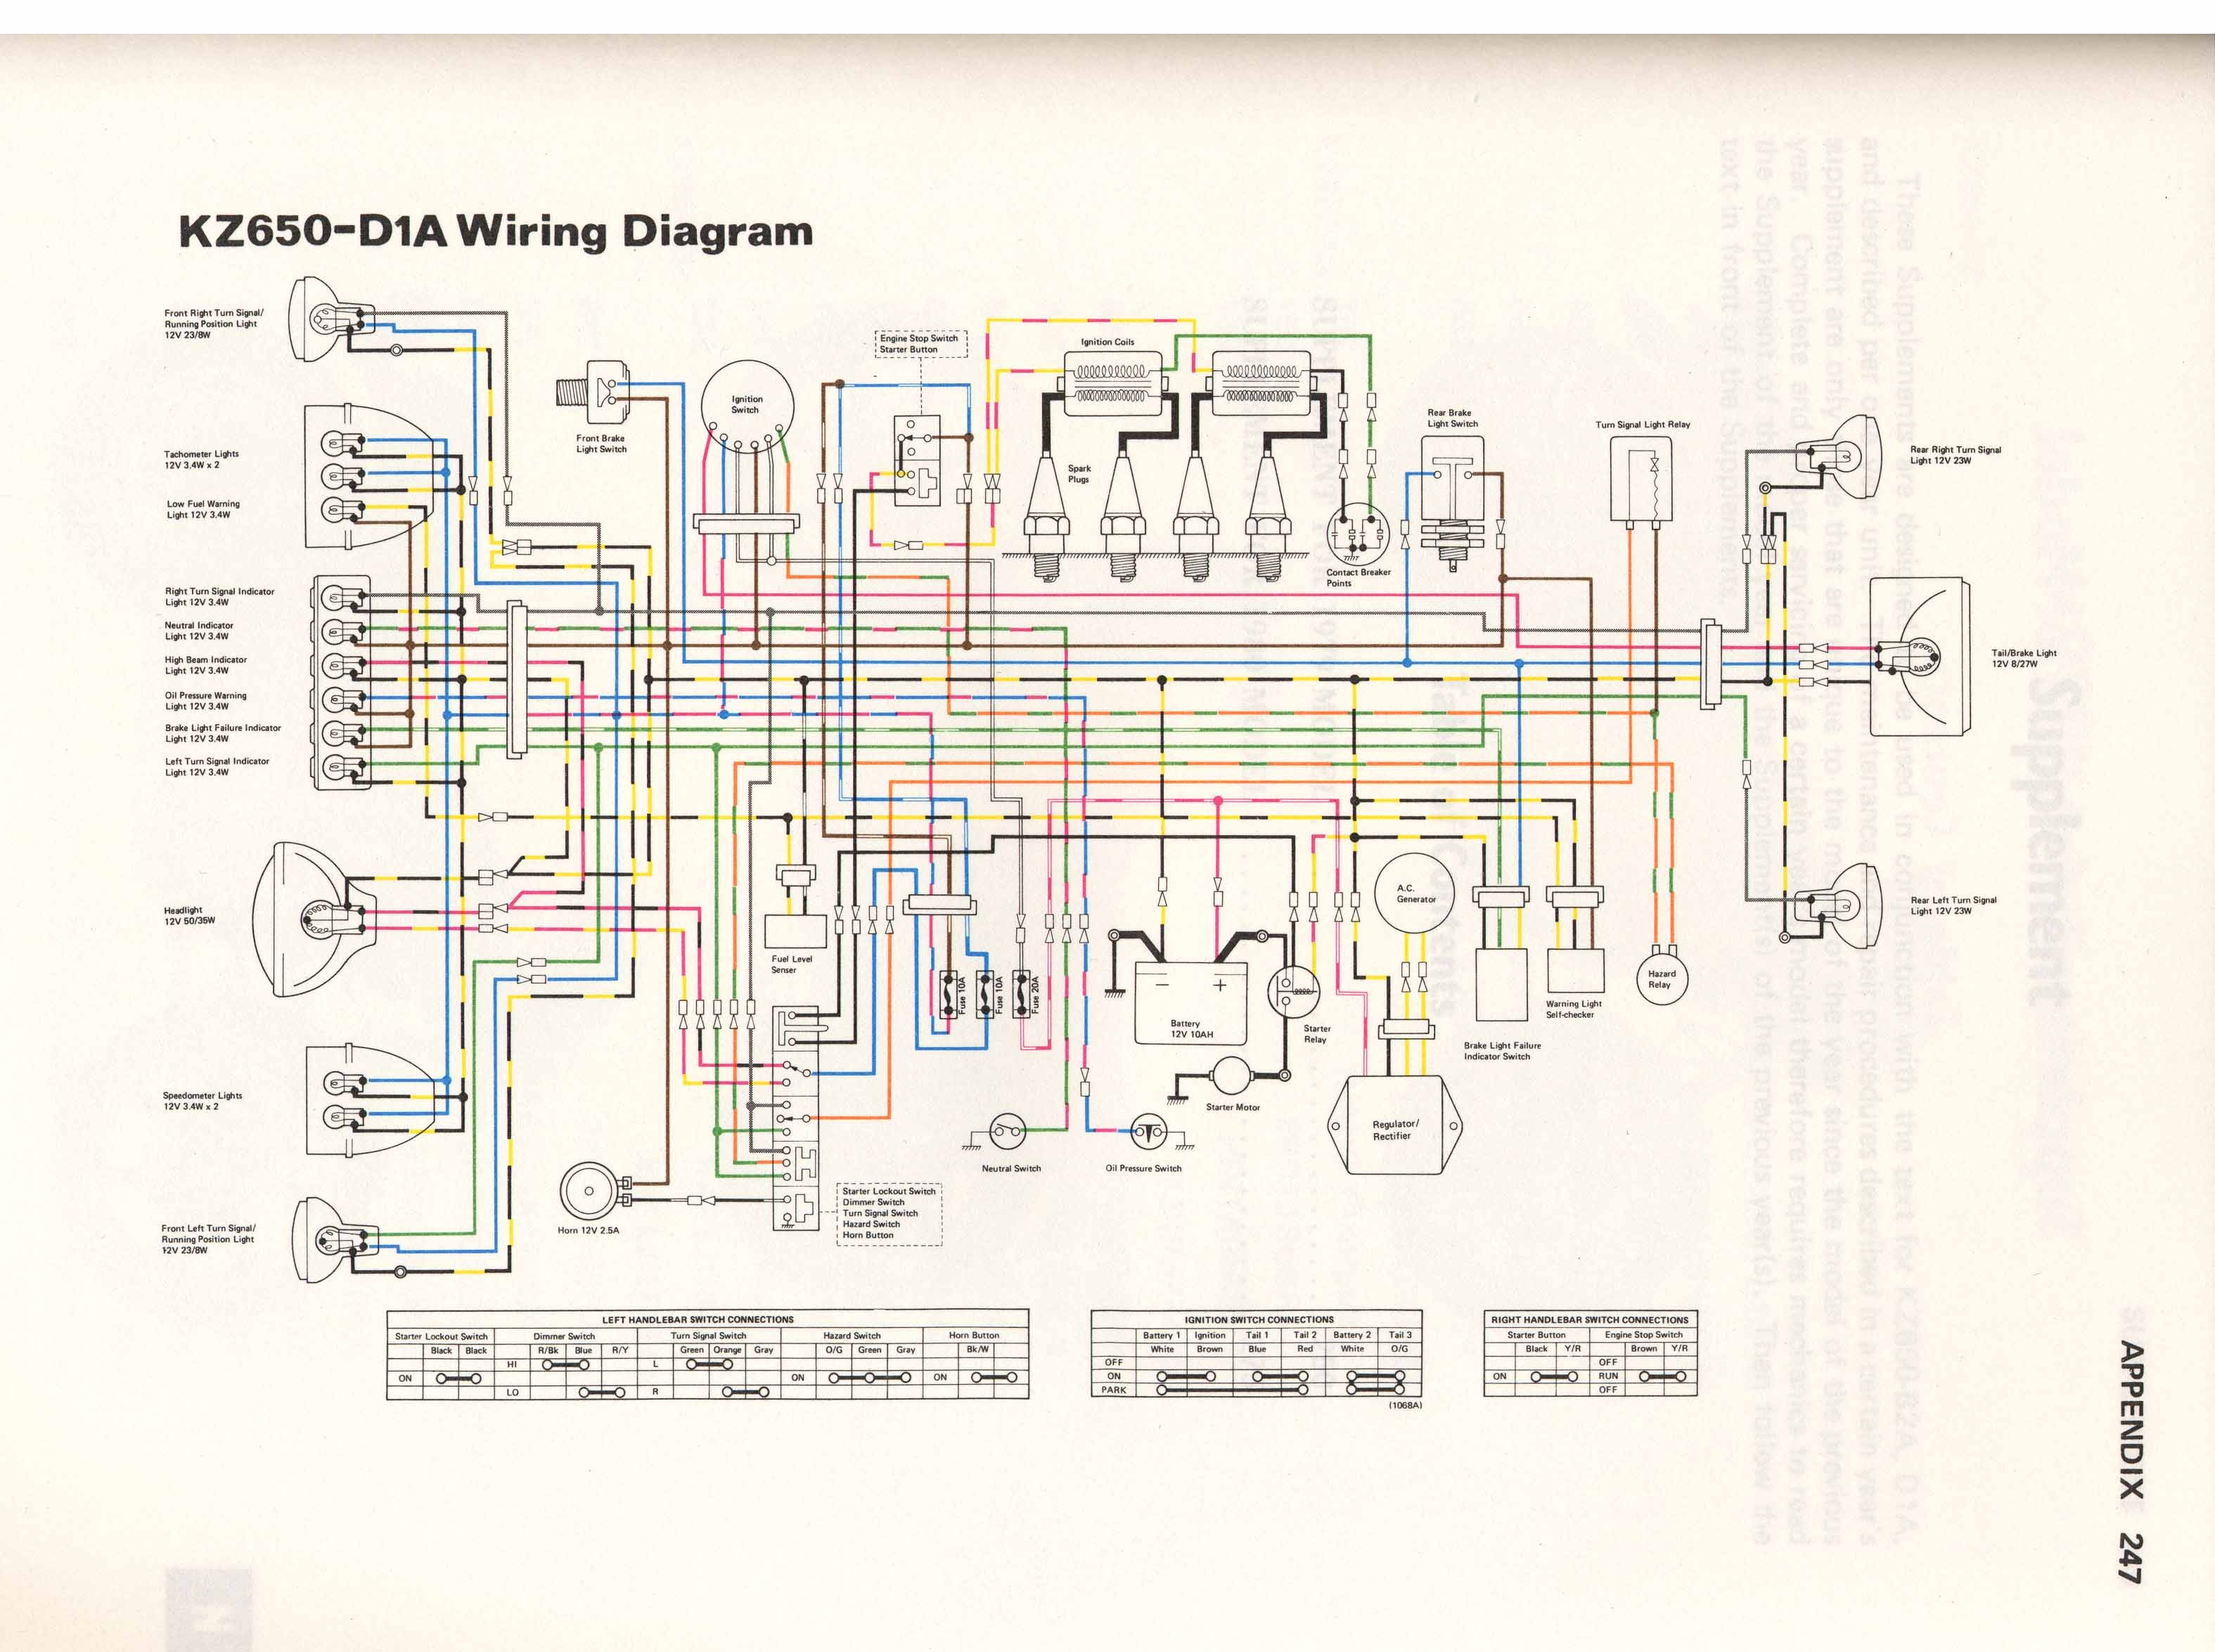 Kawasaki Ltd 1000 Wiring Diagram | Wiring Diagram on